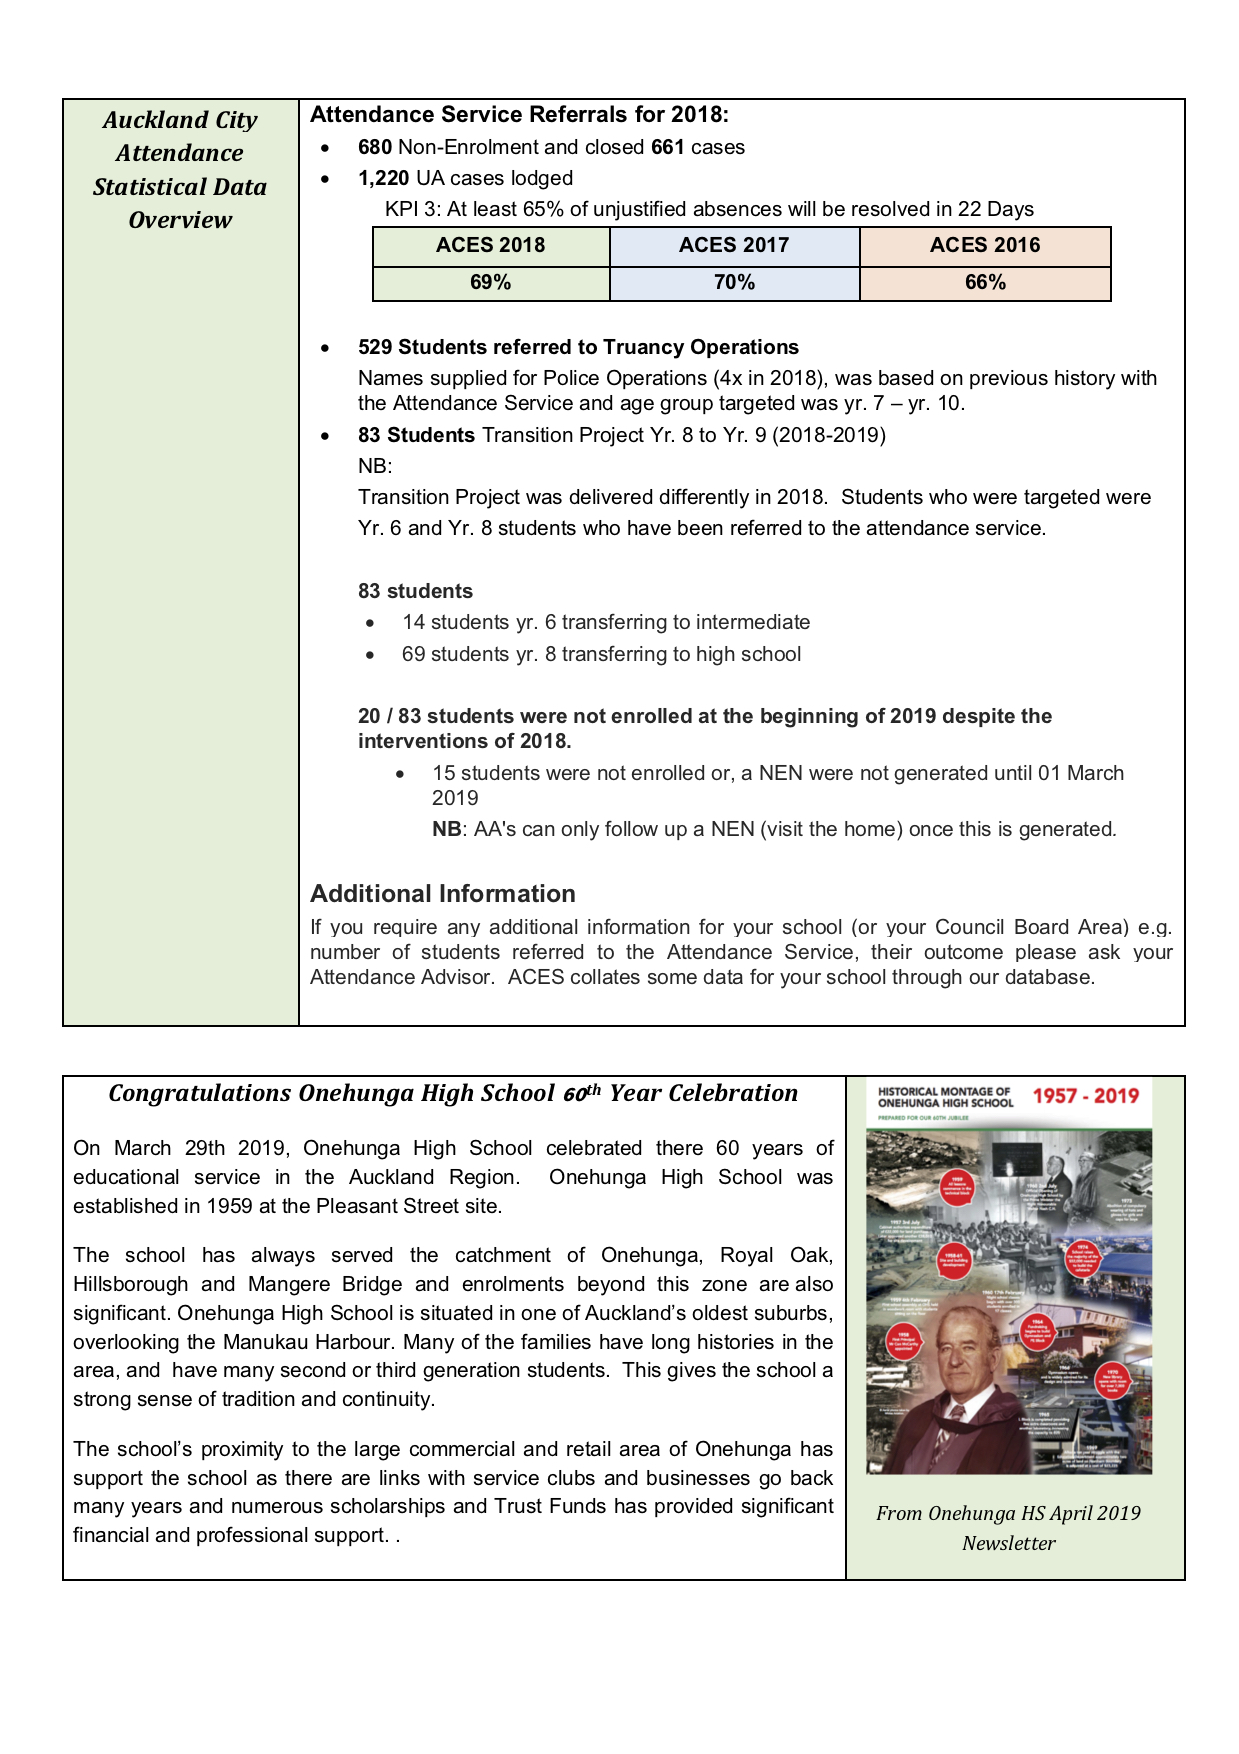 Attendance Service Newsletter May 2019  copy.jpg